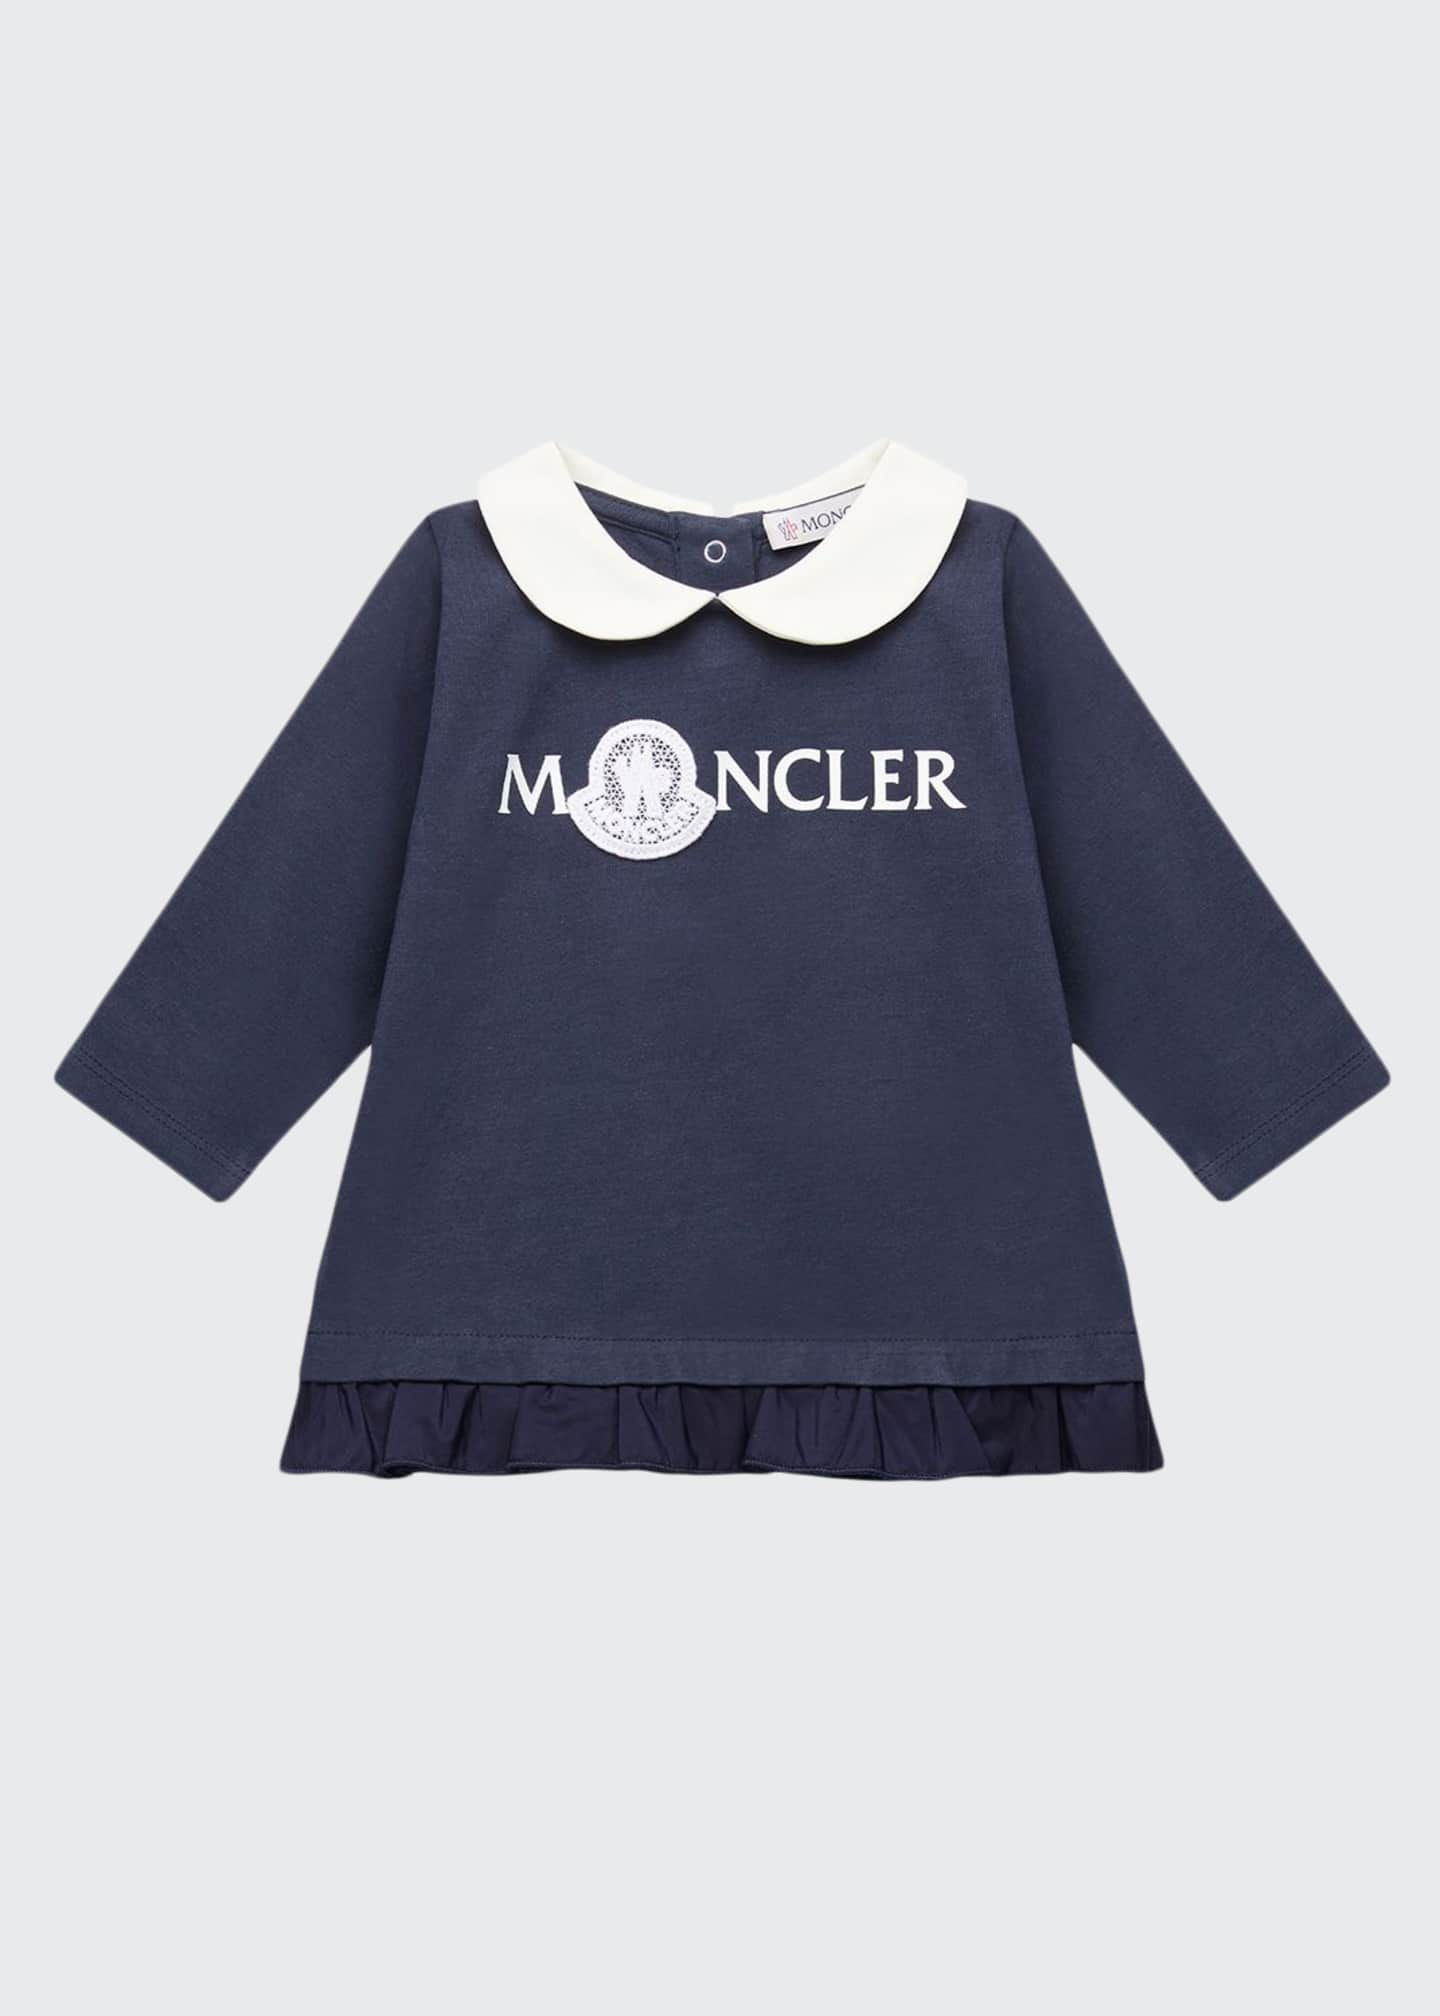 Moncler Long Sleeve Logo Dress w/ Peter Pan